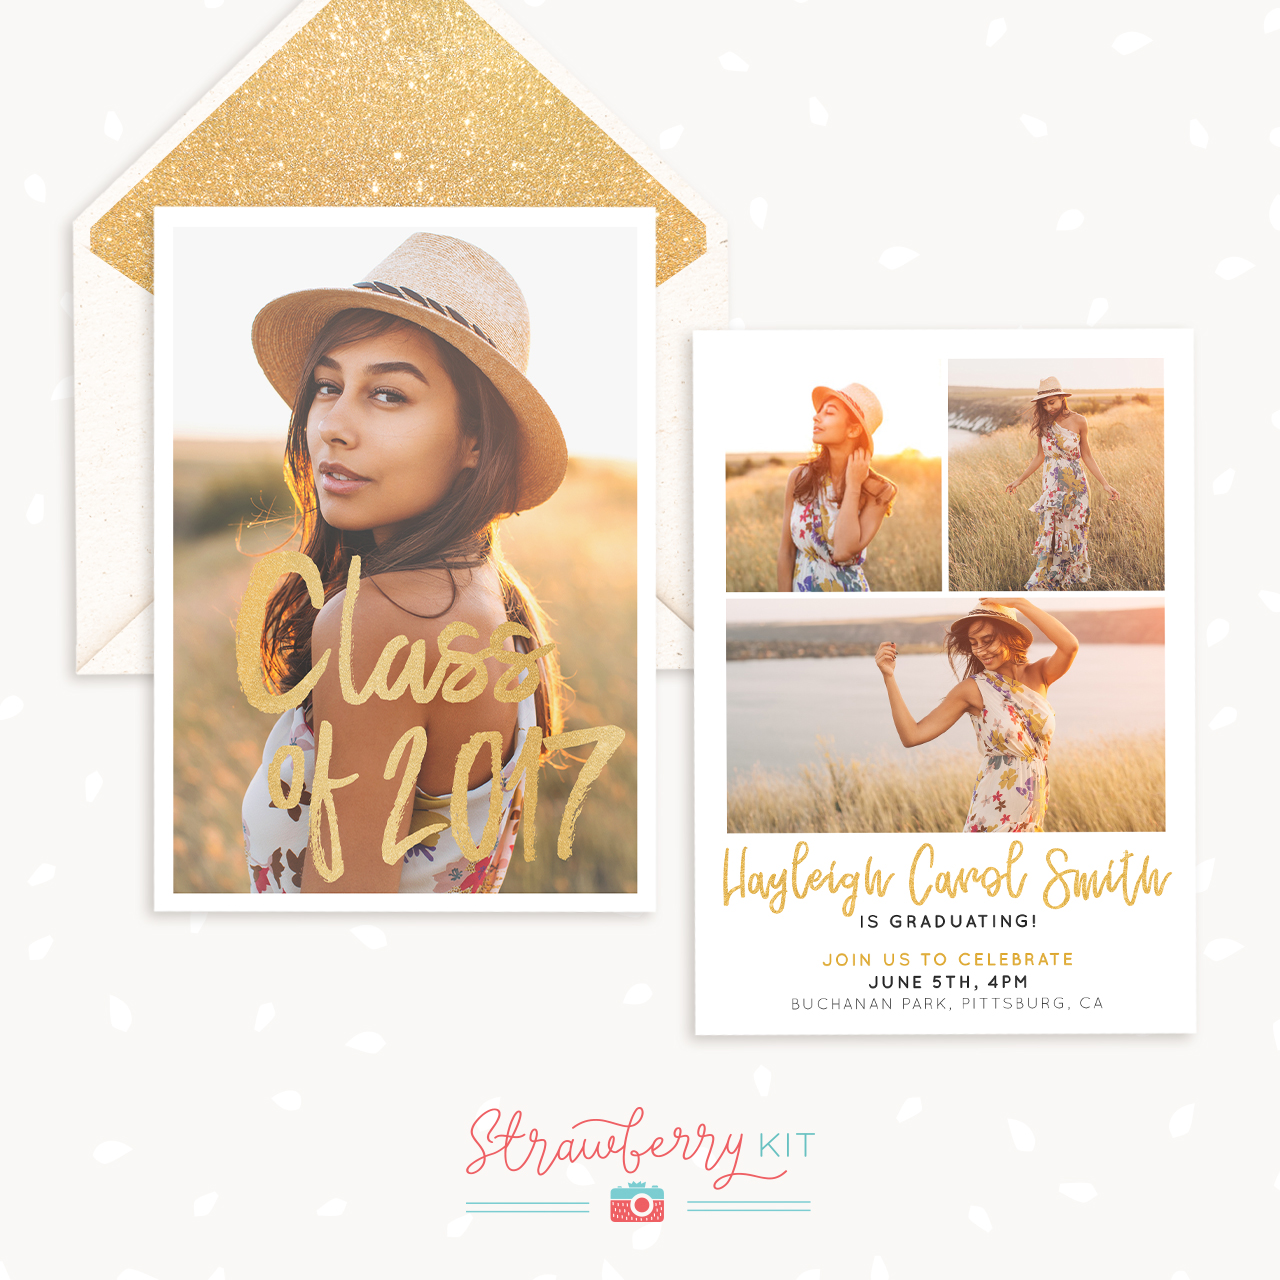 golden strokes graduation announcement template strawberry kit